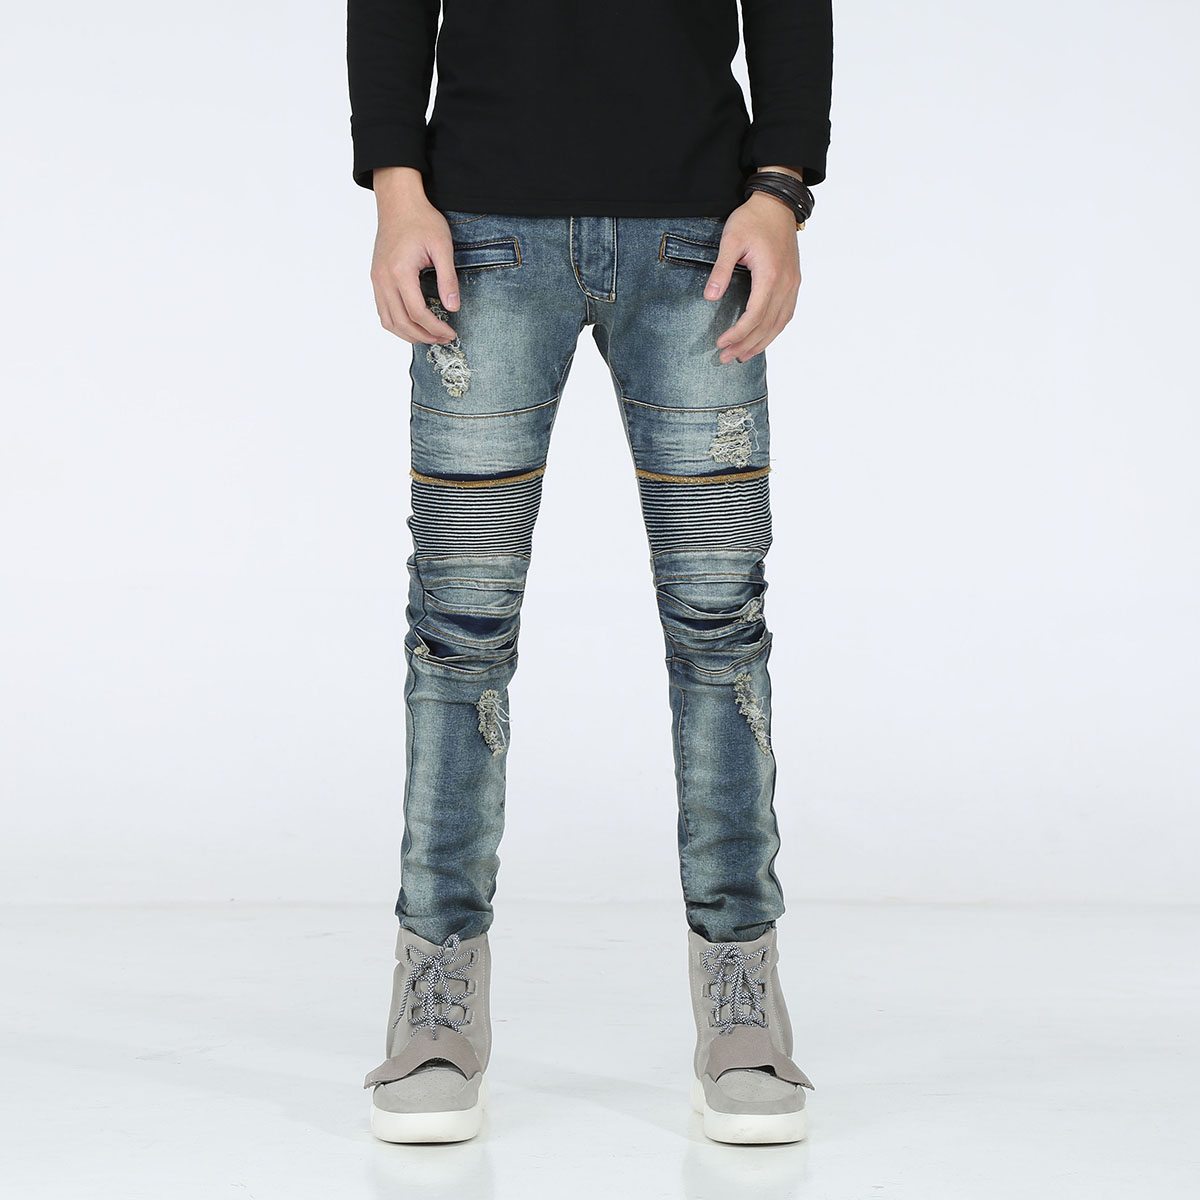 New Distressed Biker Jeans Men High Quality Fashion Mens Casual Slim Elastic Straight Denim Jeans Skinny Jeans Men Pants 29-42 недорого